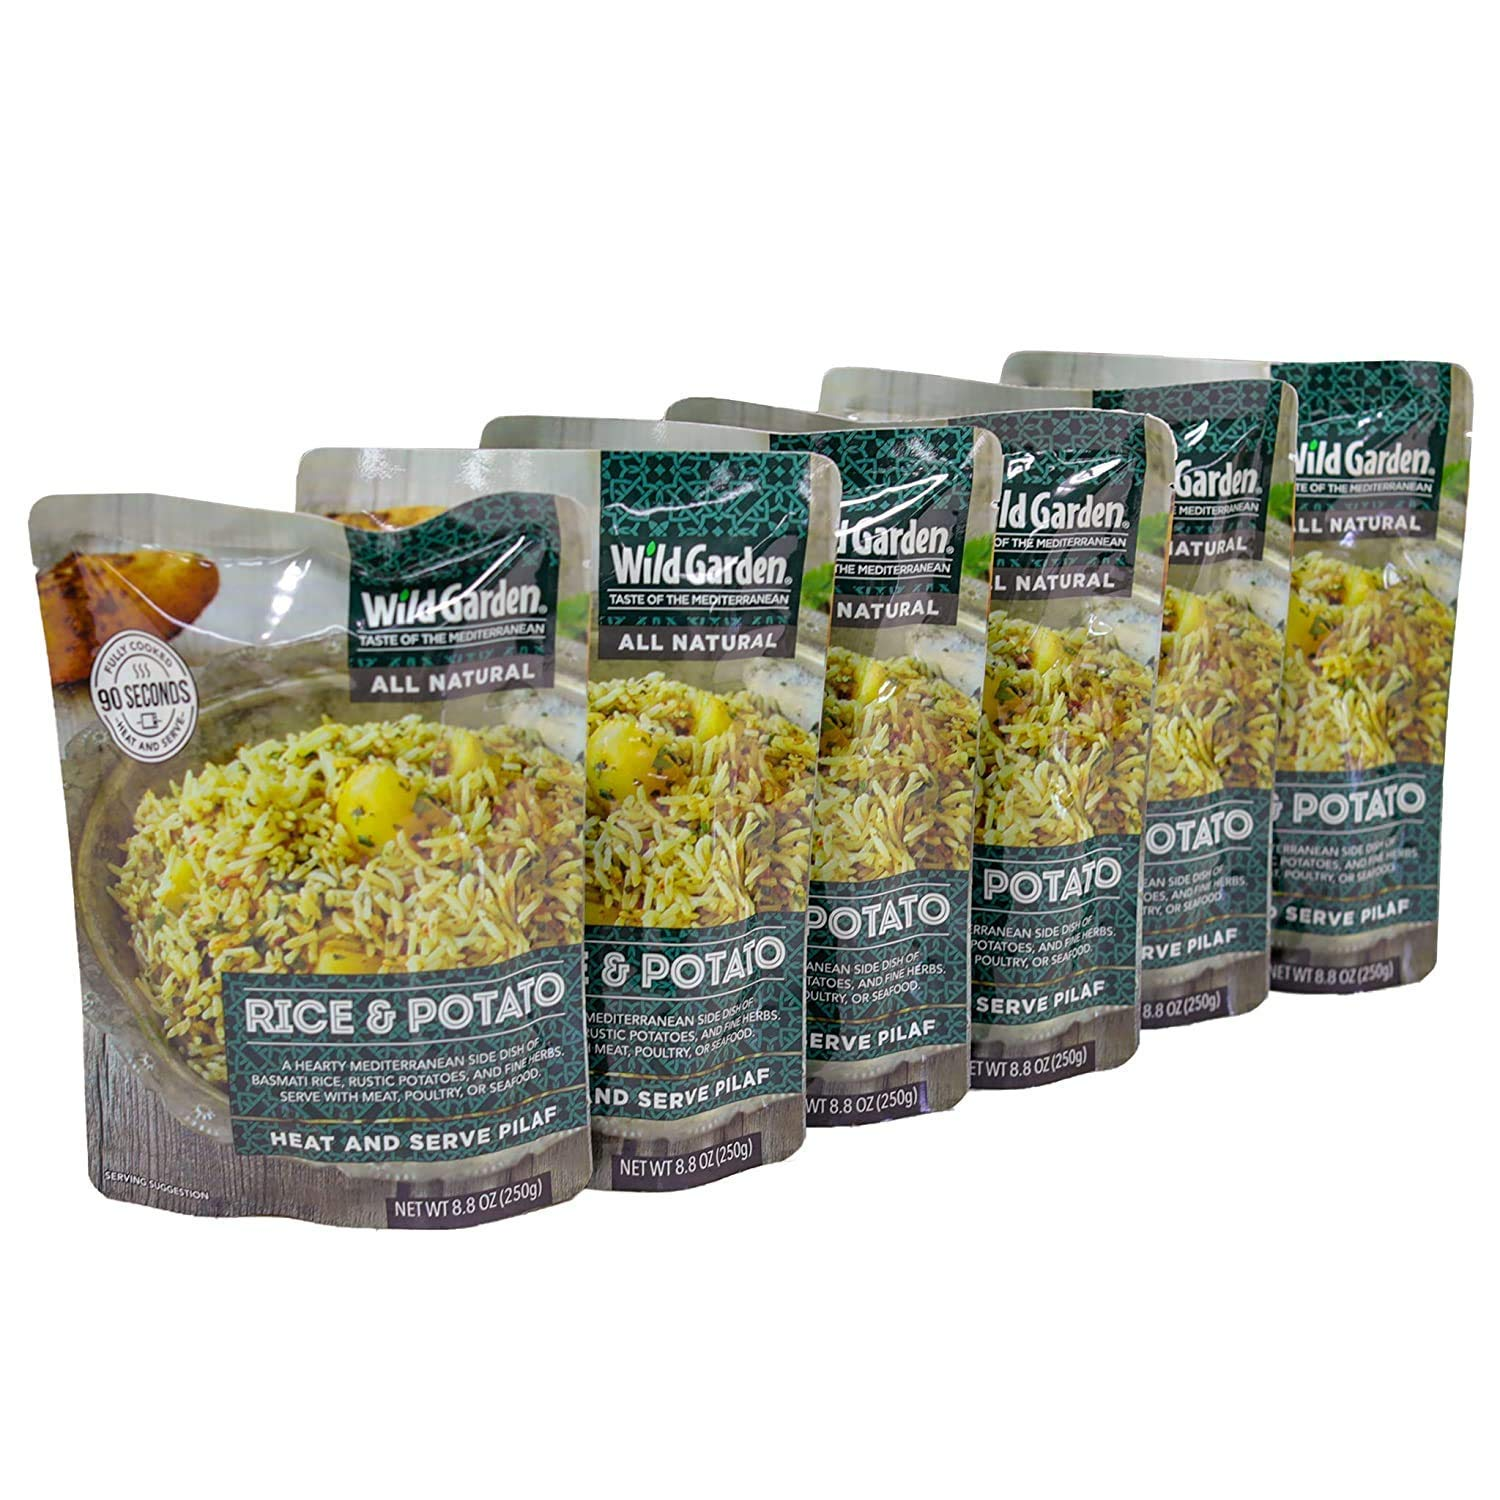 Wild Garden Heat and Serve Pilaf, 100% All-Natural Rice & Potato, Fully Cooked, Ready to Eat, Microwavable 8.8 oz, 6 pack